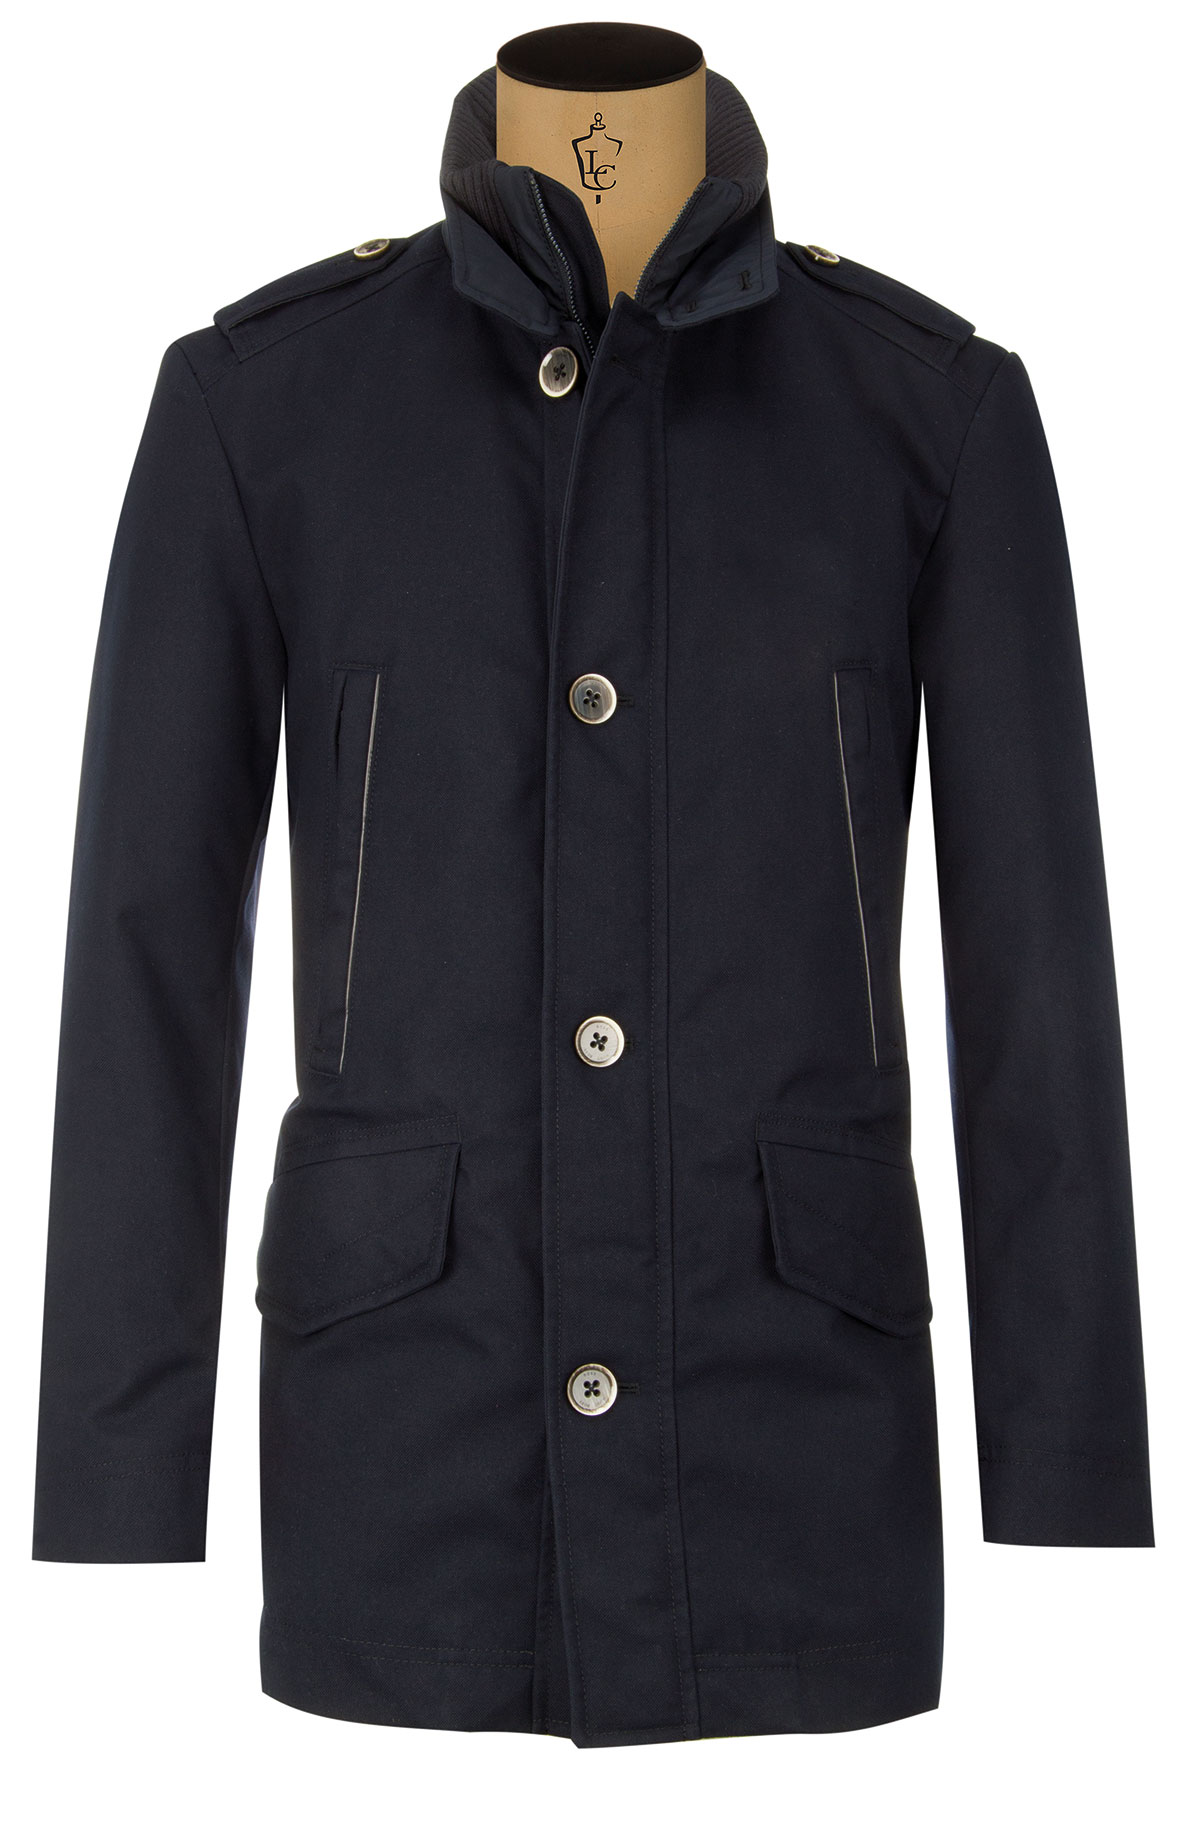 Hugo Boss Black Cossam Coat €549 at Louis Copeland – The Sidekick to a Suit